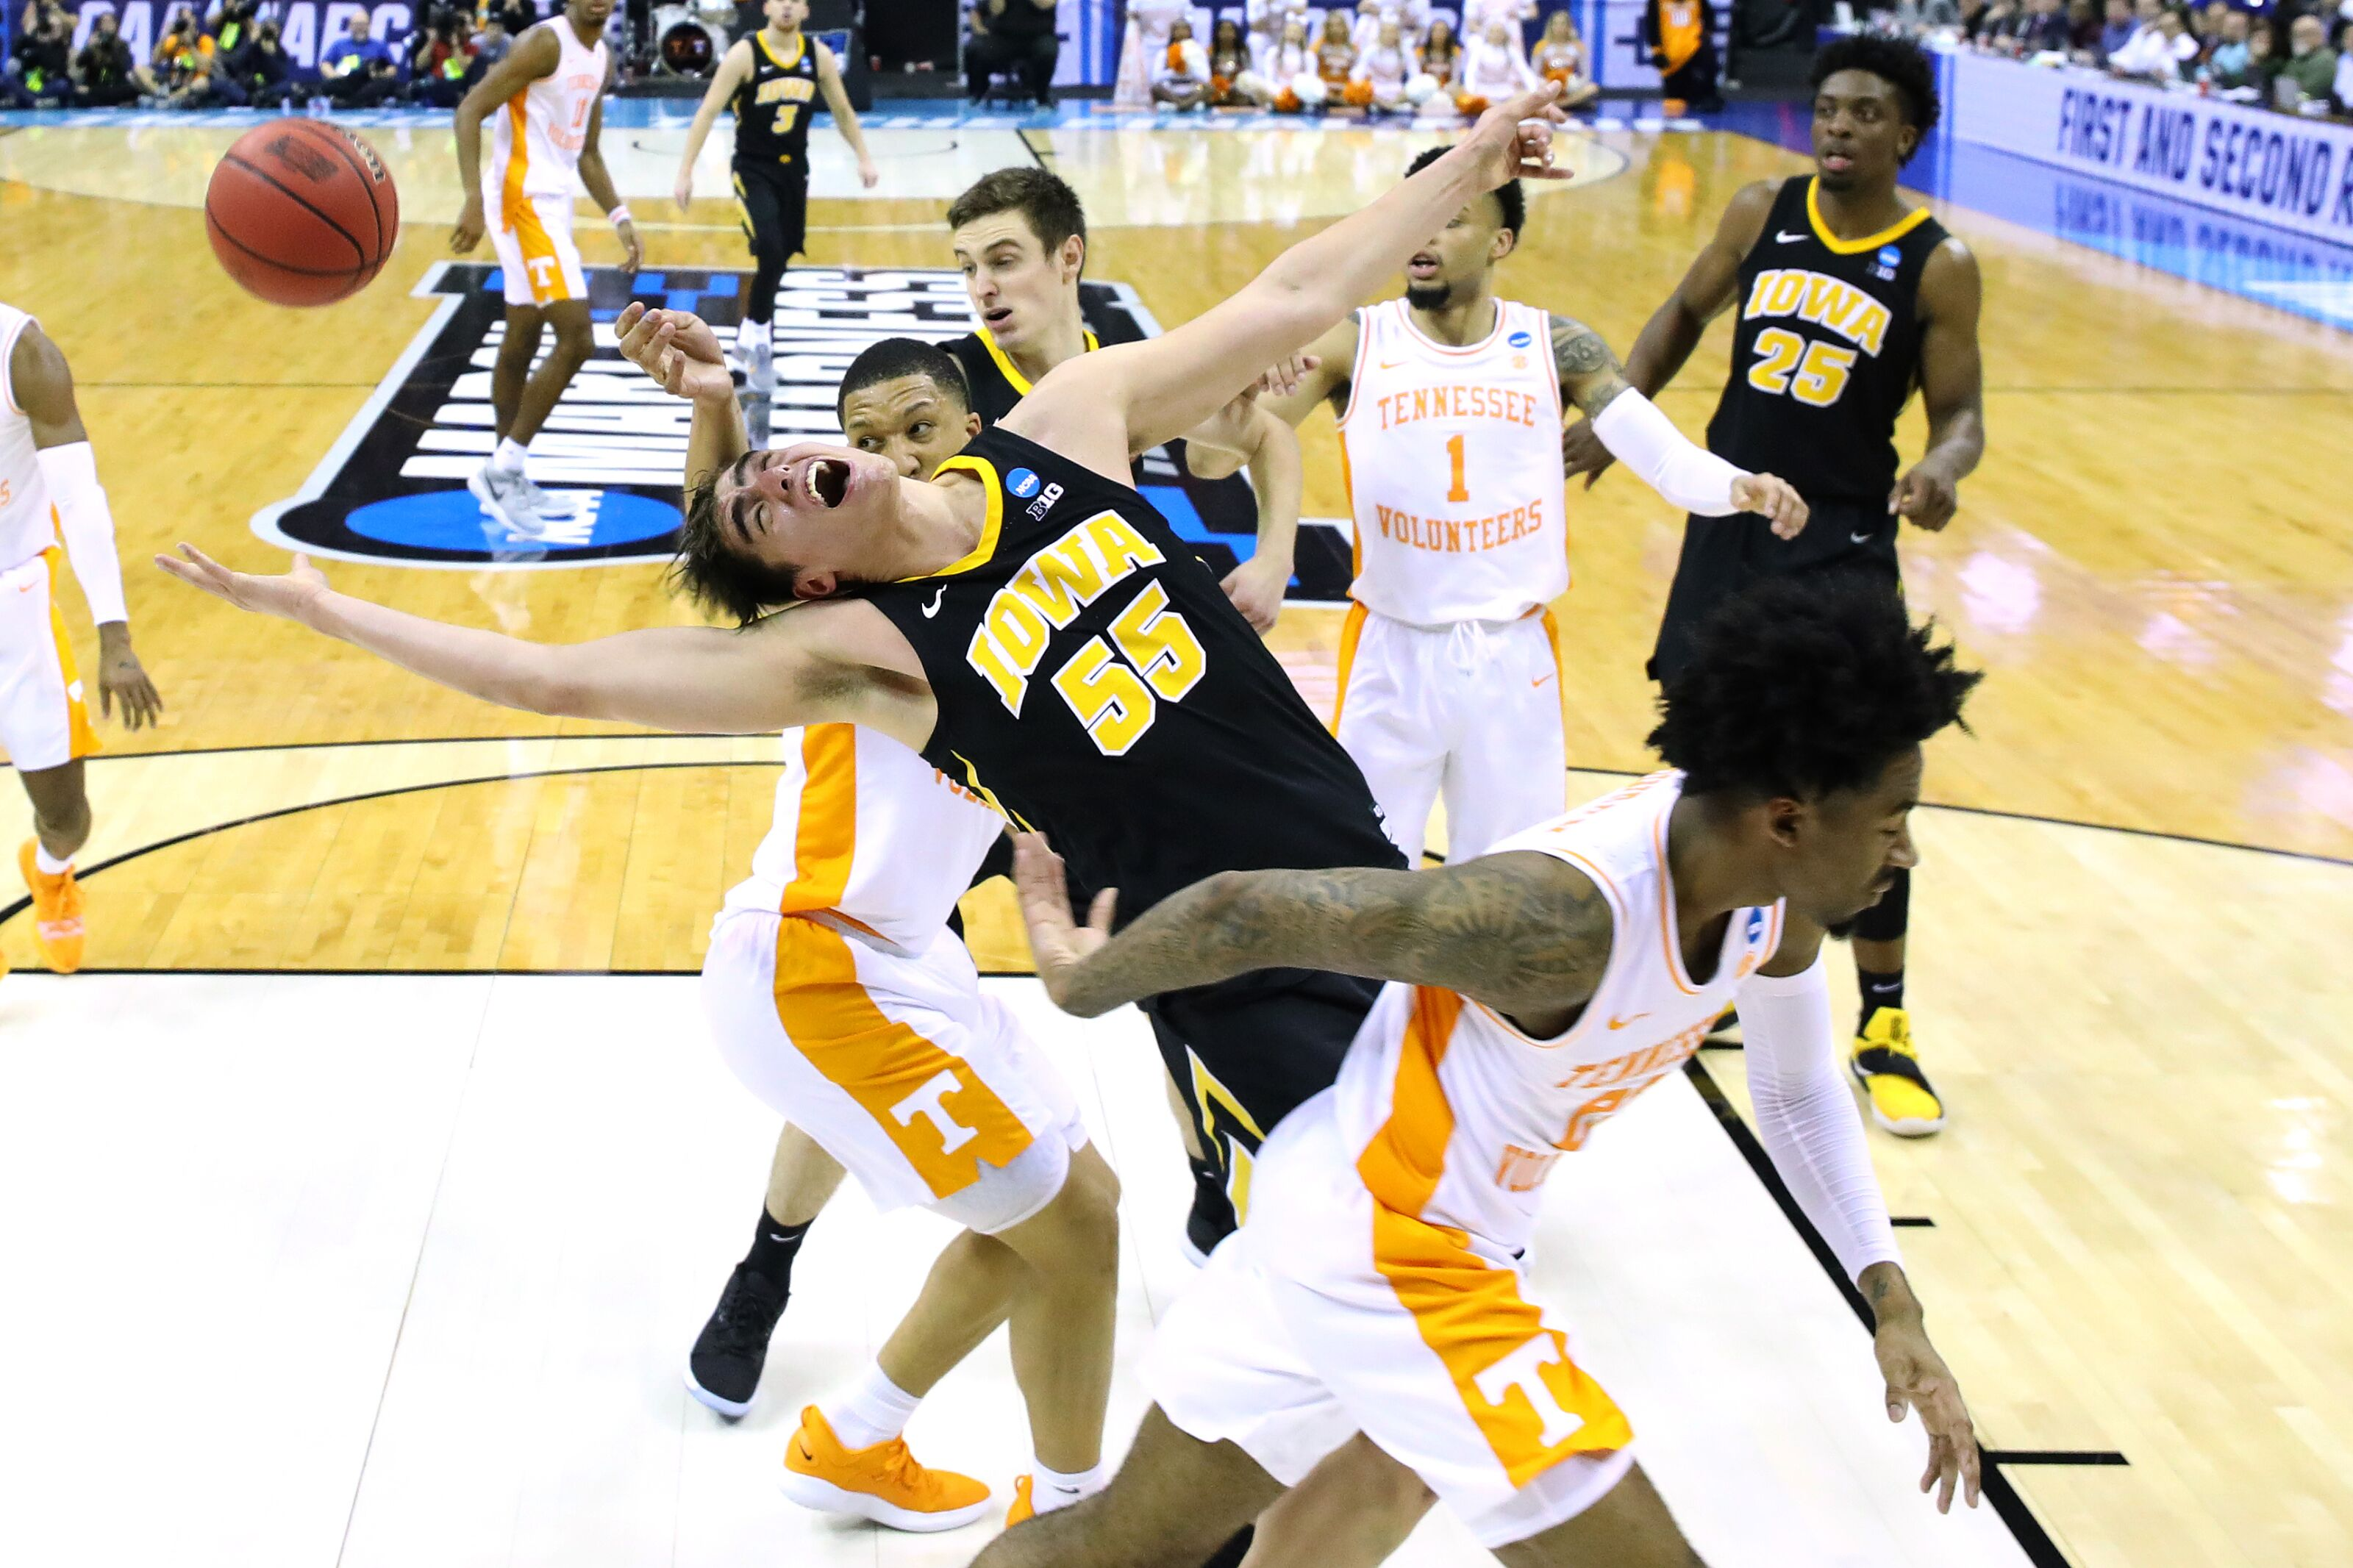 Iowa basketball: Hawks 2nd round game ranked 13th in NCAA tournament